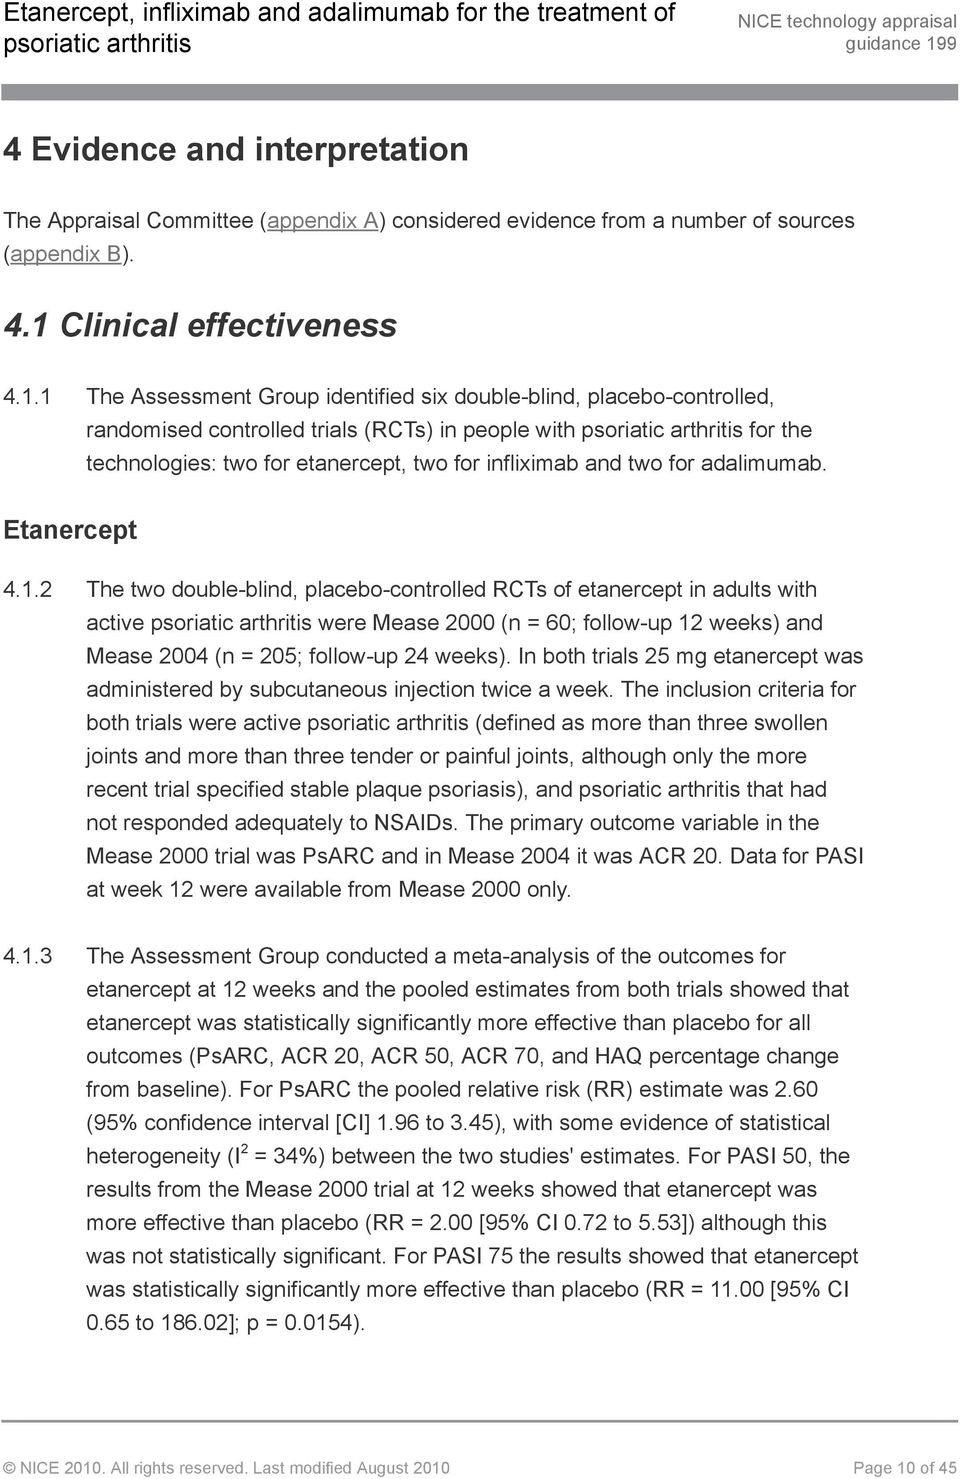 1 The Assessment Group identified six double-blind, placebo-controlled, randomised controlled trials (RCTs) in people with for the technologies: two for etanercept, two for infliximab and two for